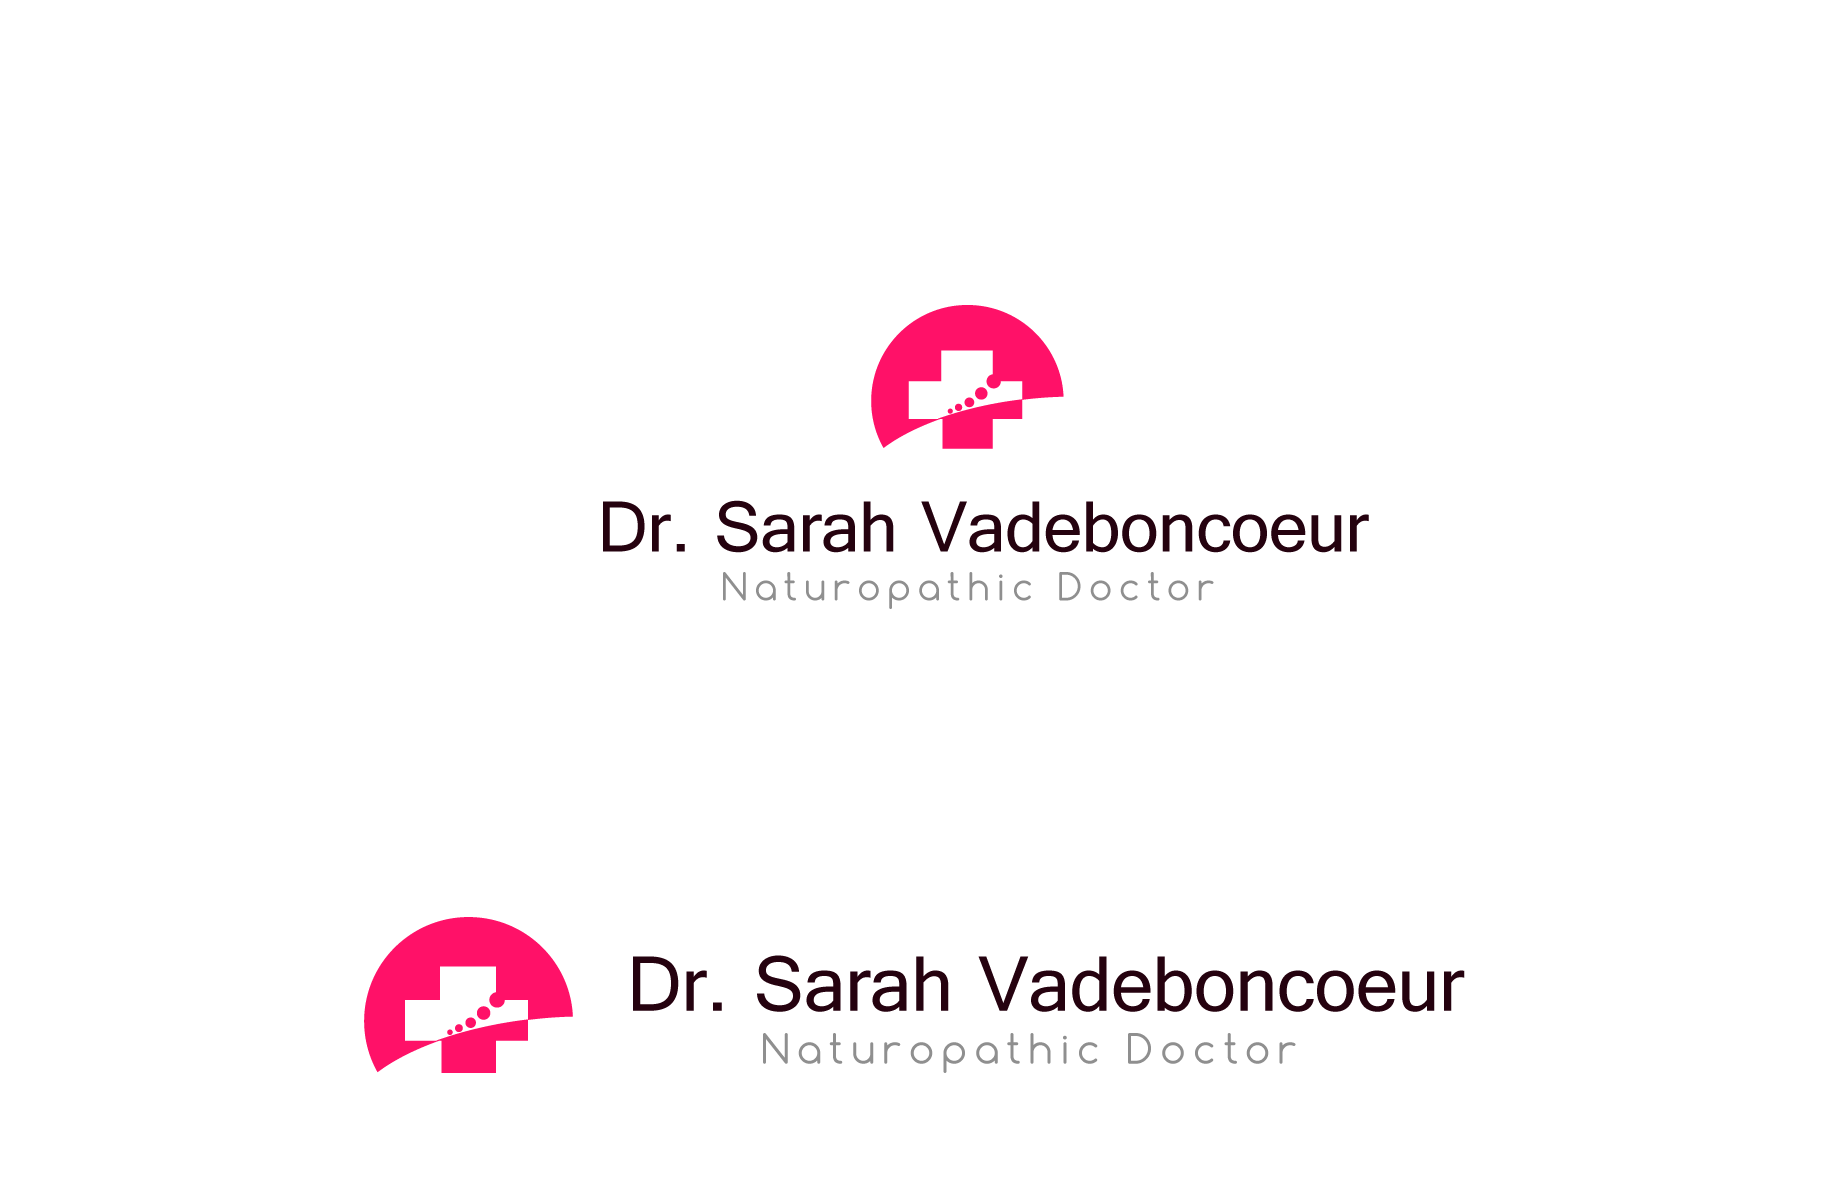 Logo Design by Jan Chua - Entry No. 64 in the Logo Design Contest New Logo Design for Dr. Sarah Vadeboncoeur, Naturopathic Doctor.